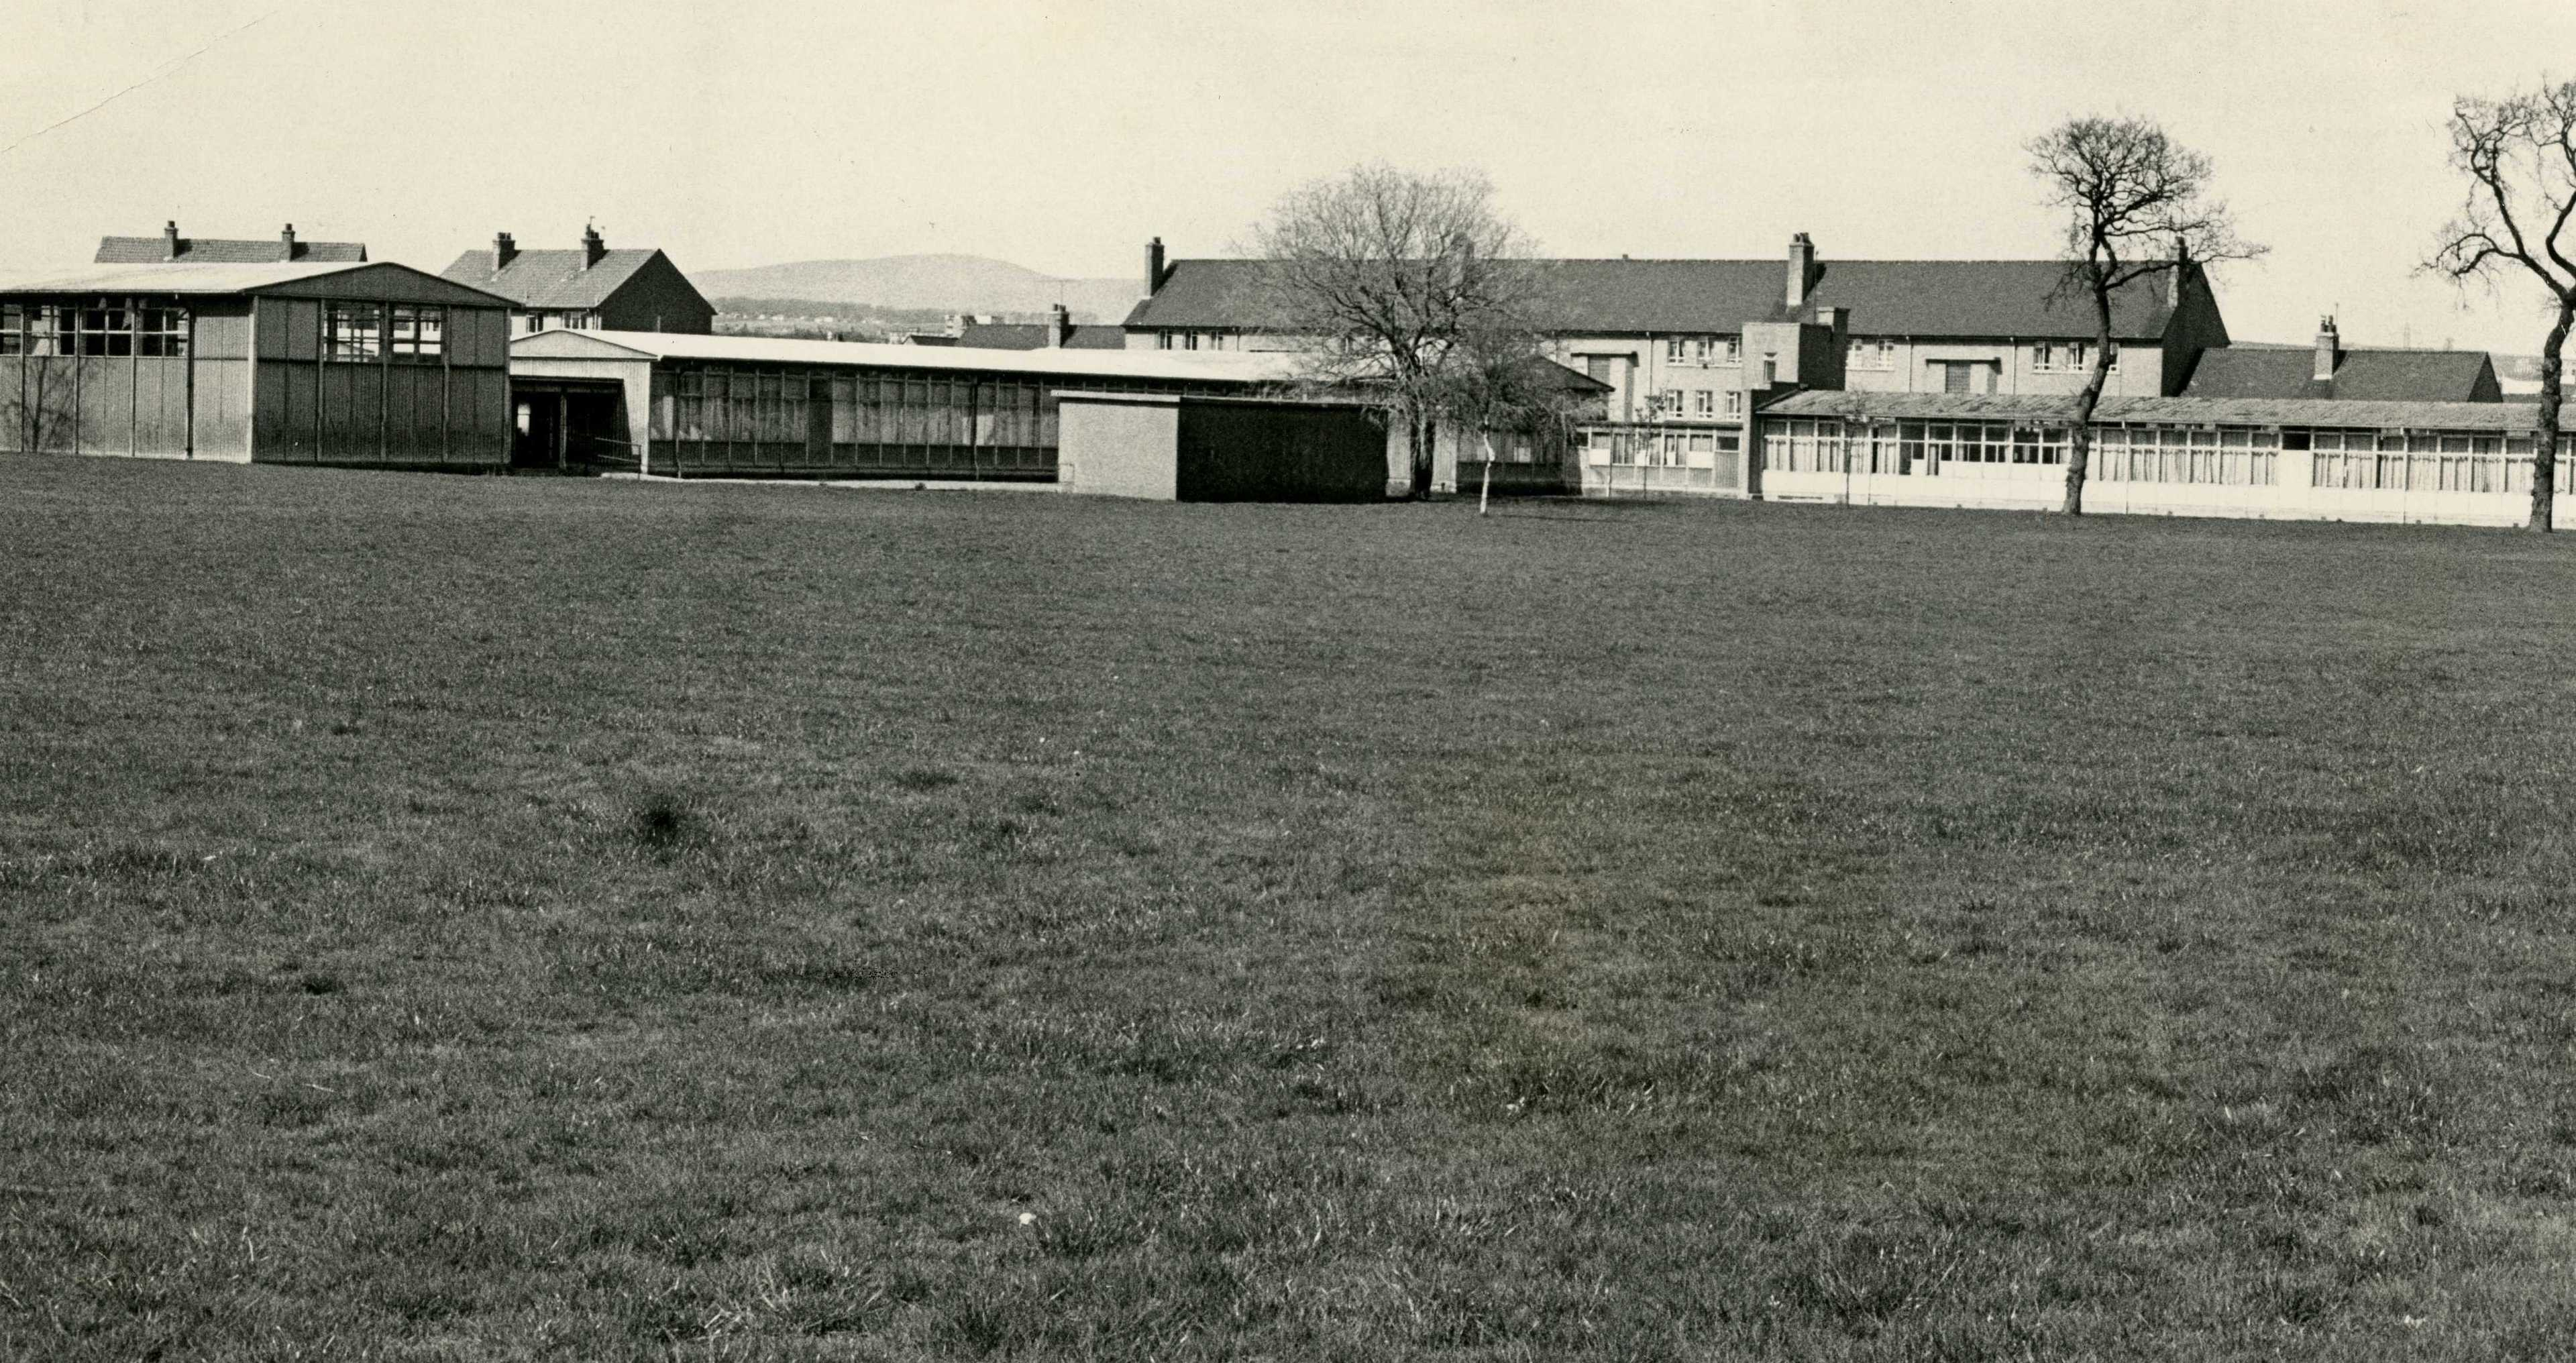 1985 and the grounds of the old Balerno Primary School, which was later demolished.